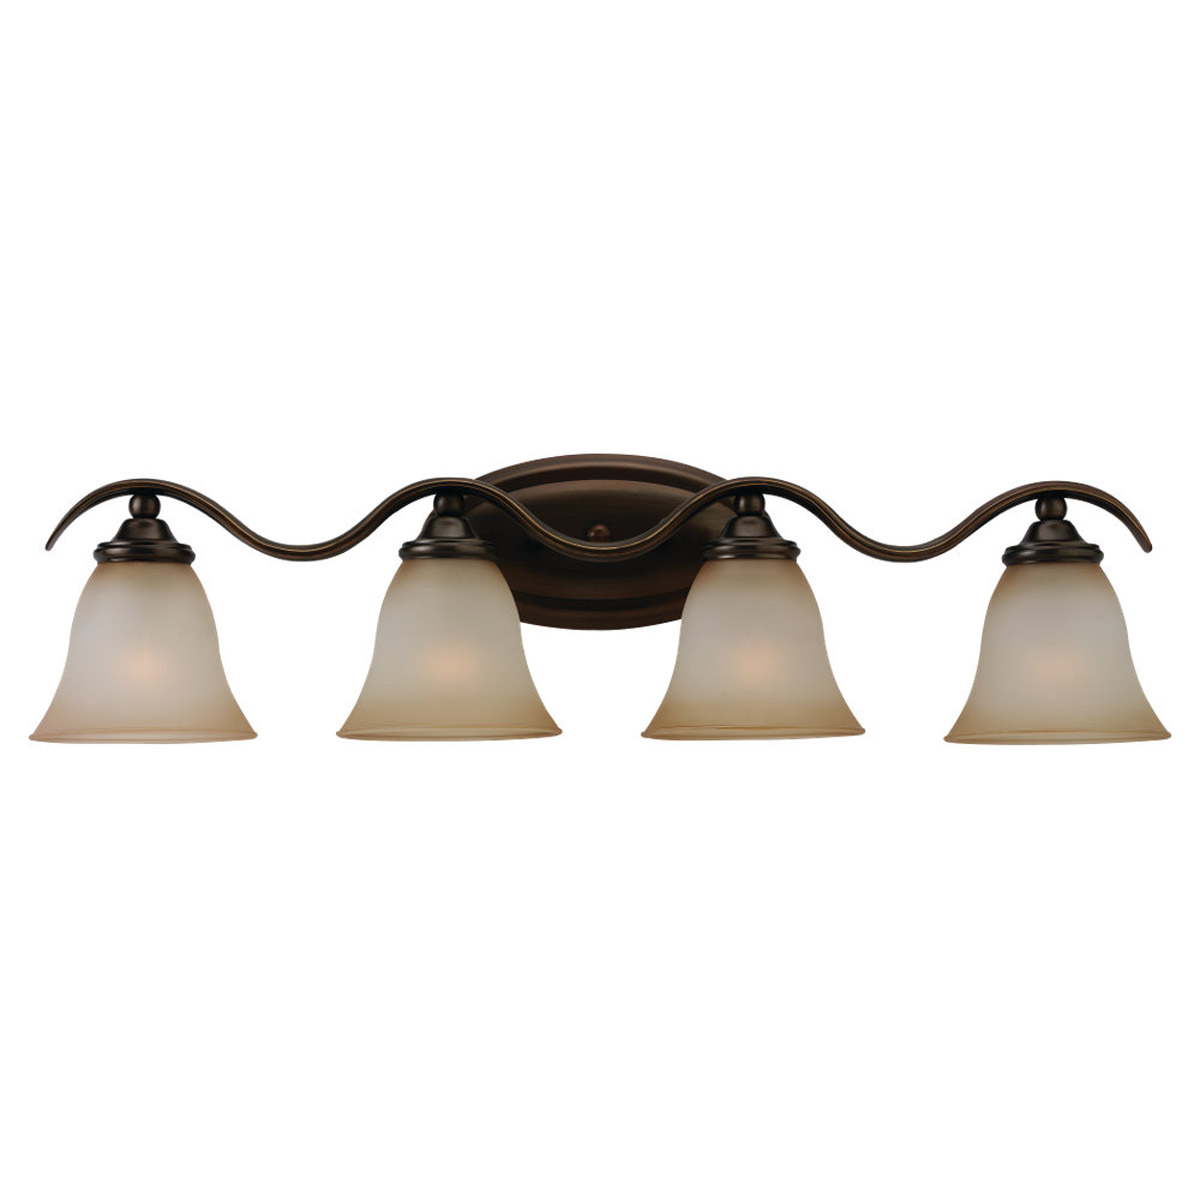 Sea Gull Lighting Rialto 4 Light Bath Vanity in Russet Bronze 44362-829